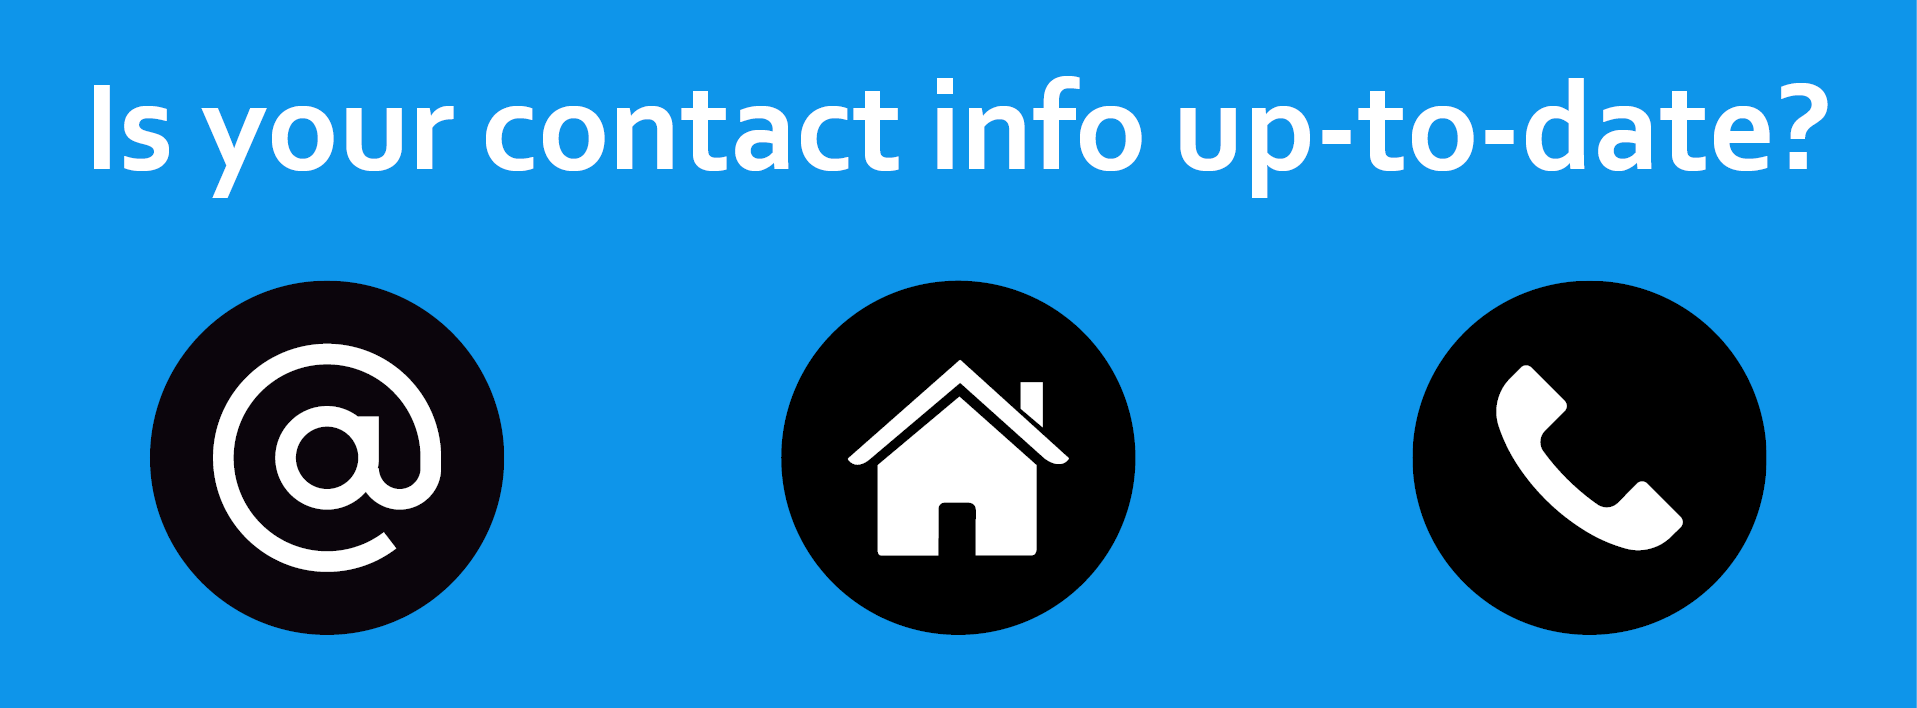 Is your contact info up-to-date?